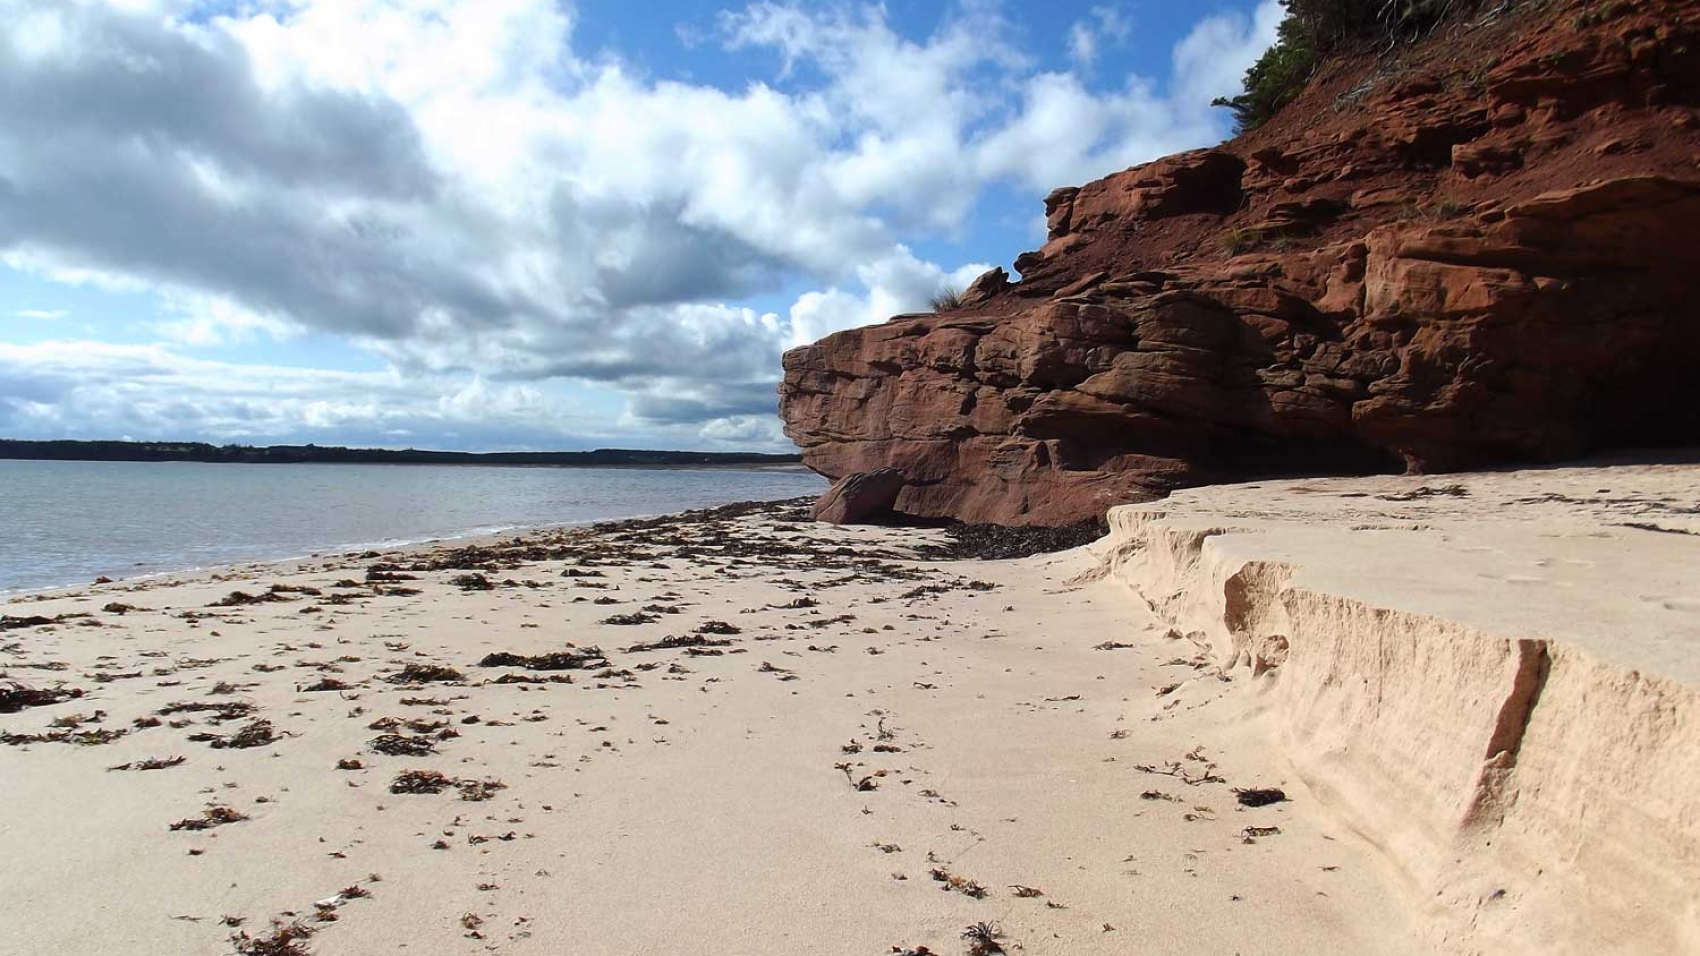 Stunning red cliffs and sandy beaches of PEI